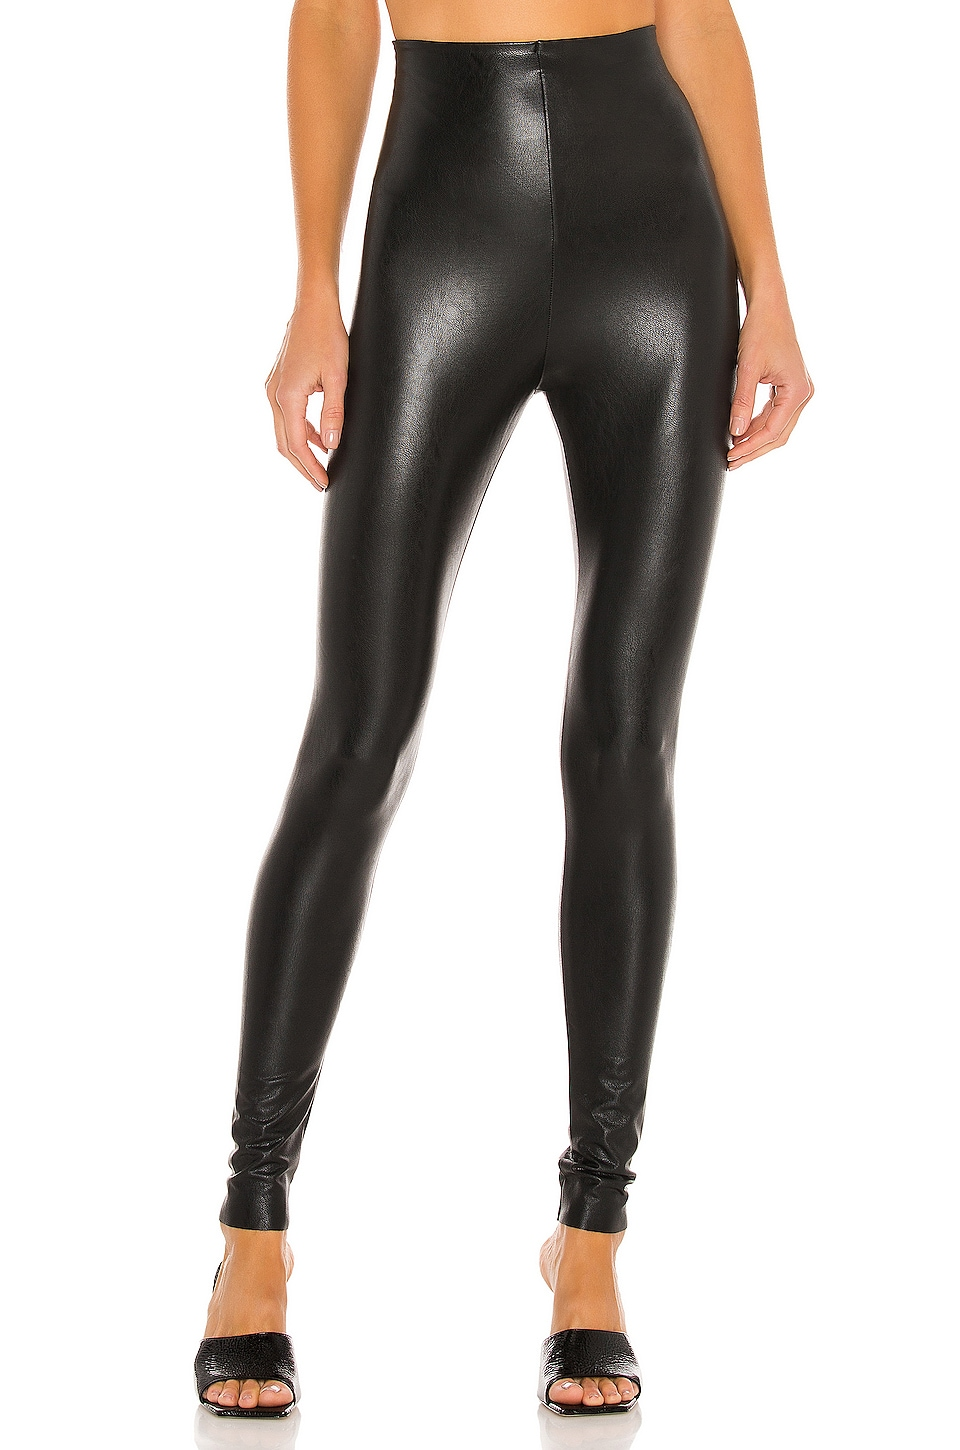 Perfect Control Faux Leather Legging             Commando                                                                                                       CA$ 139.34 4